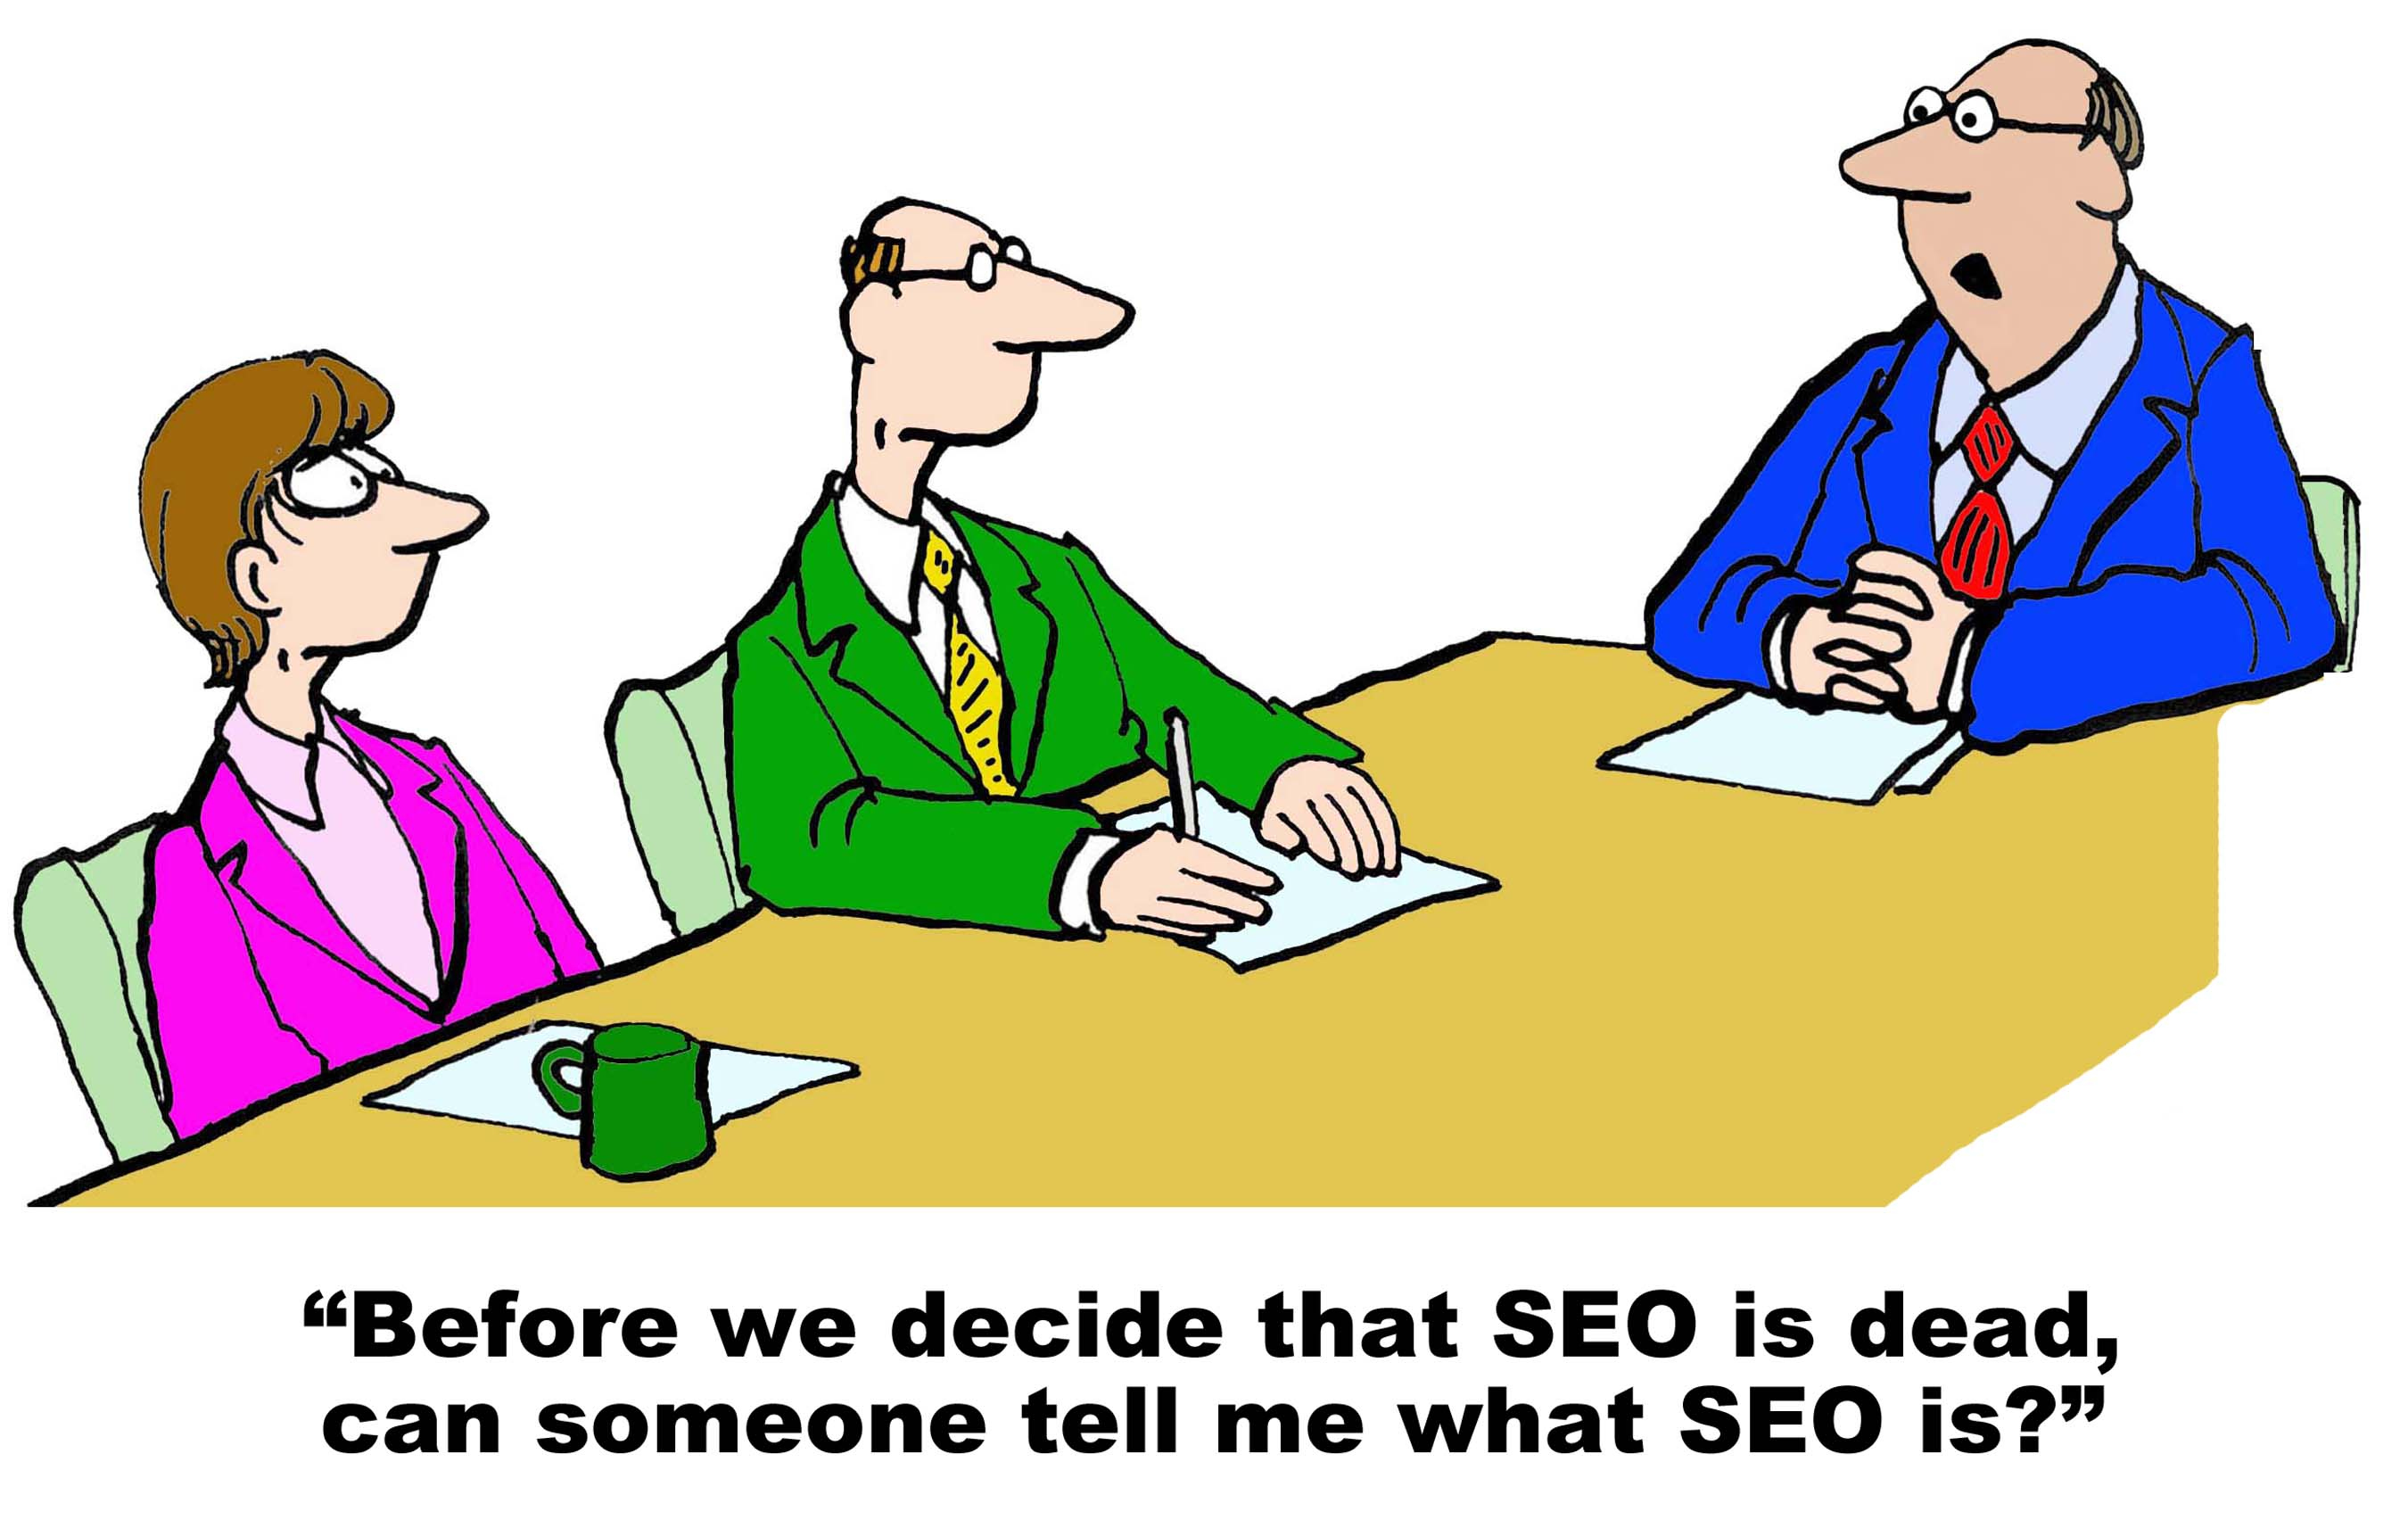 Business cartoon showing businesspeople in a meeting and business boss asking, 'Before we decide that SEO is dead, can someone tell me what SEO is?'.